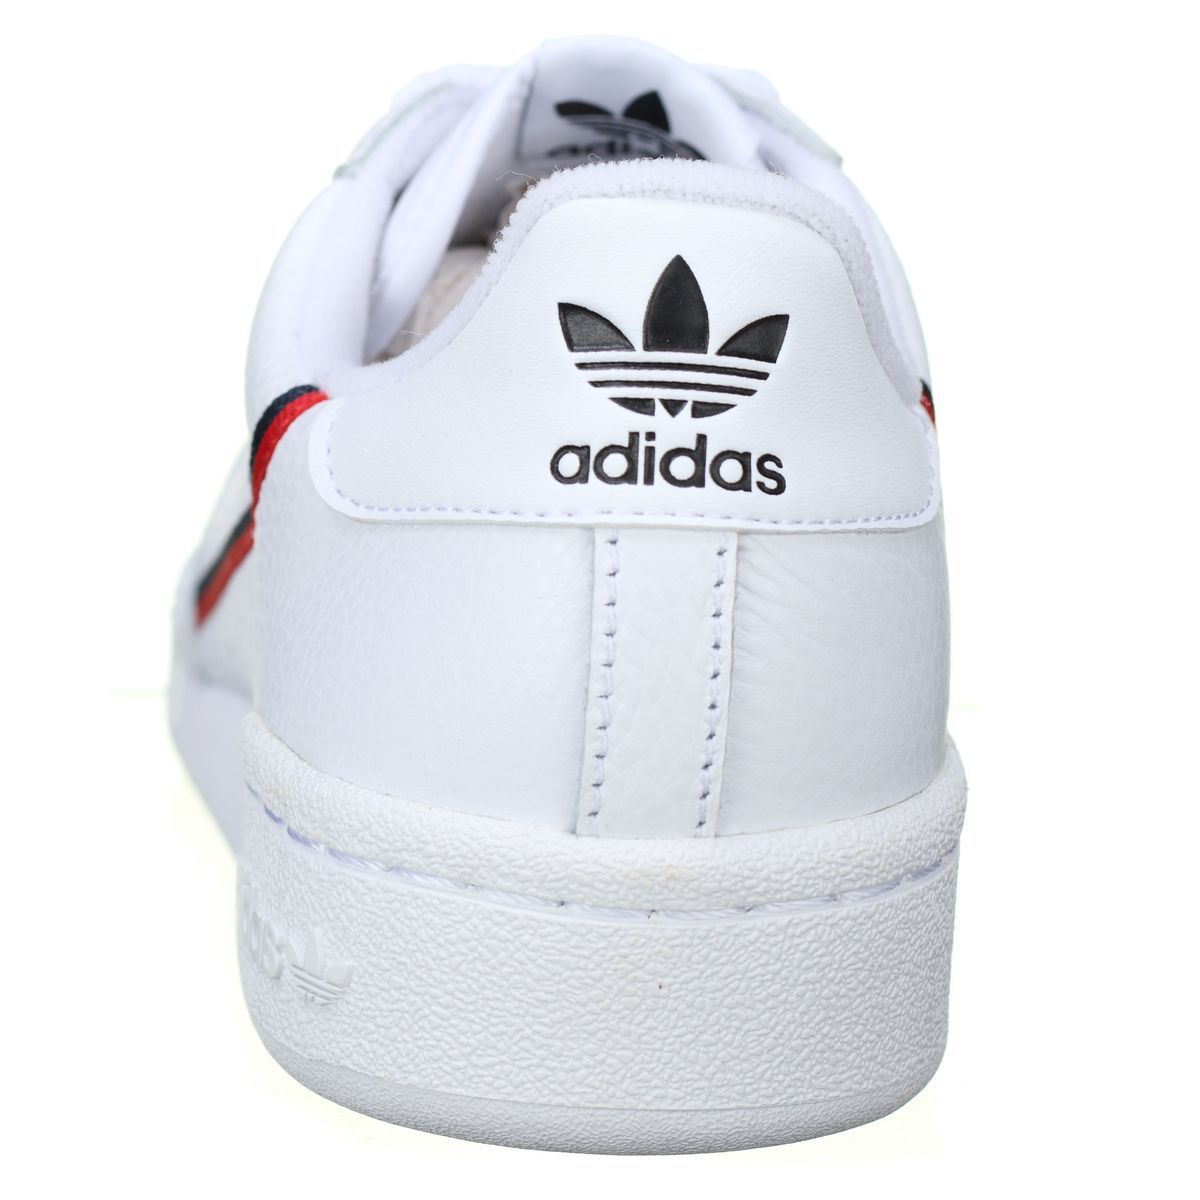 Taille41 Baskets Continental 13;42 23;44;45 80 wnmNv0O8